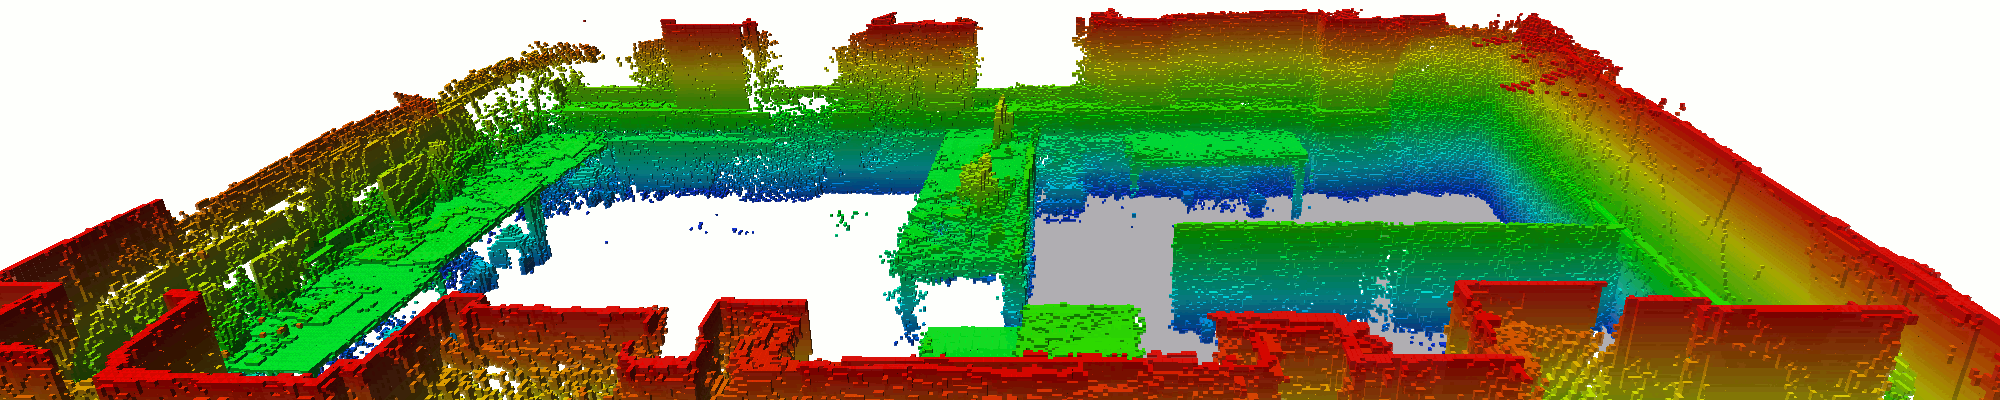 3D Map of the RoboLab (two-room robot area marked gray)